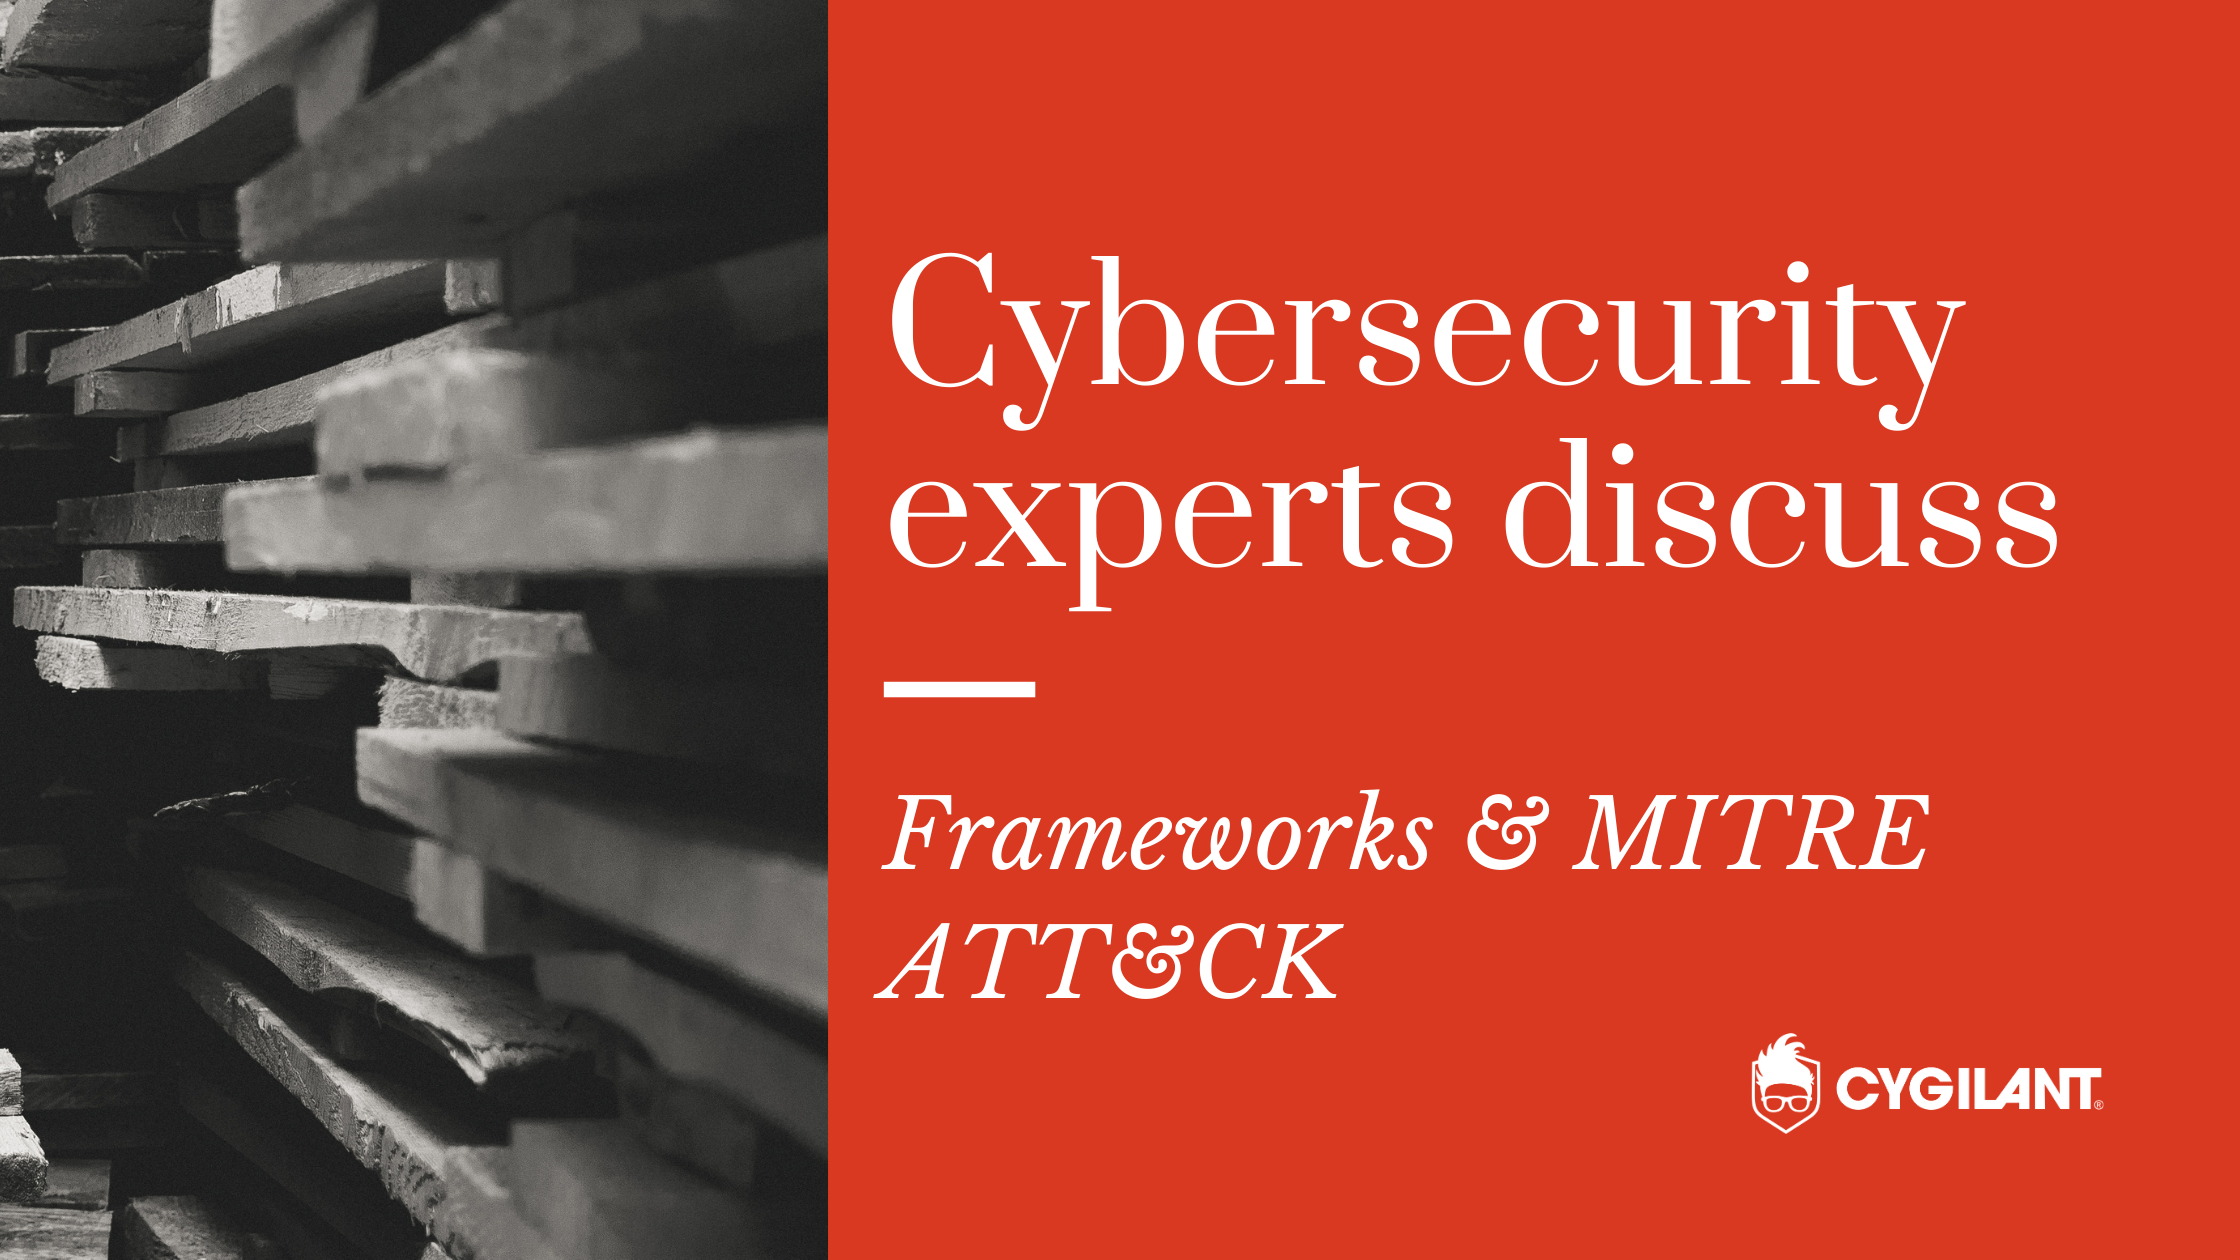 Cybersecurity Experts Discuss: Frameworks & MITRE ATT&CK